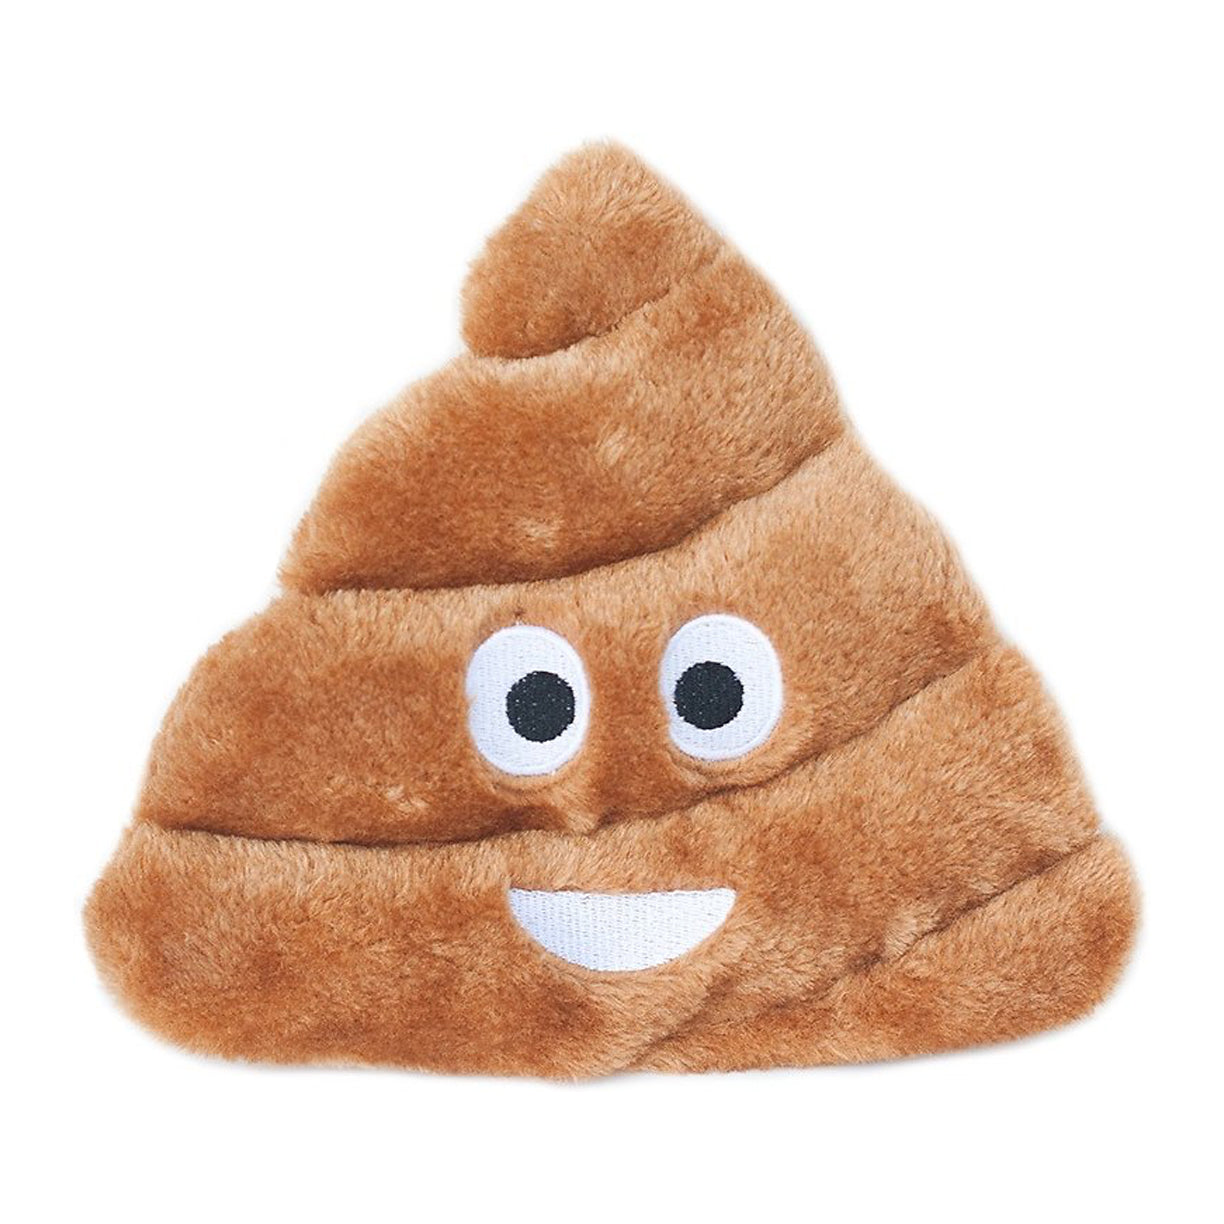 ZippyPaws Emojiz Pile o' Poo Dog Toy